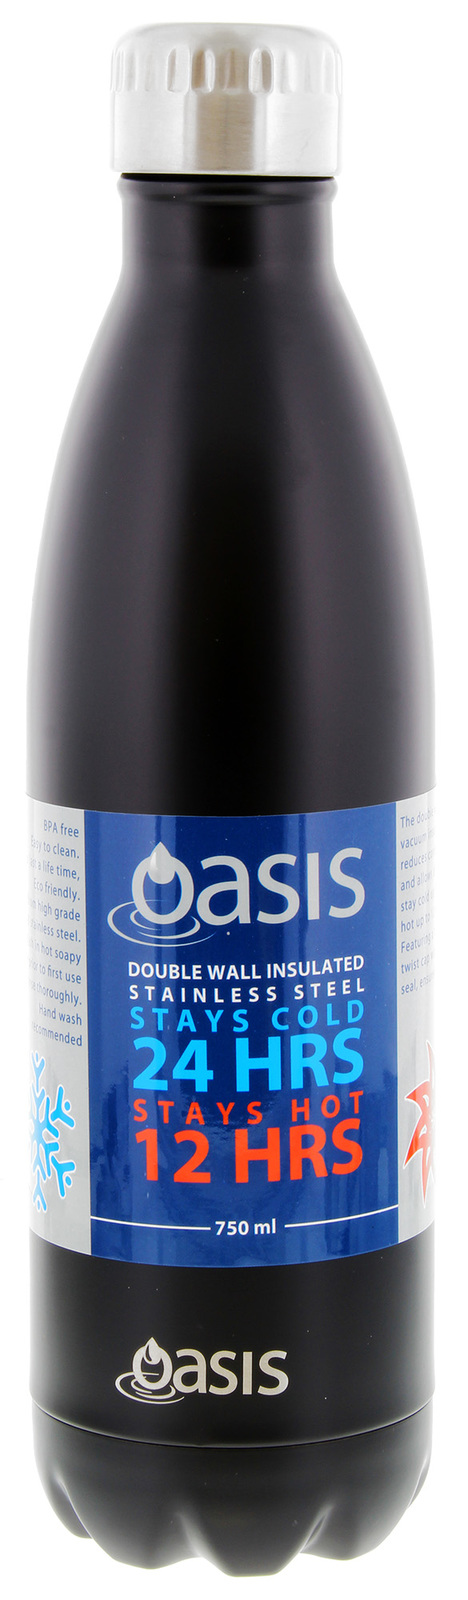 Oasis Insulated Stainless Steel Drink Bottle - 750ml (Matte Black) image